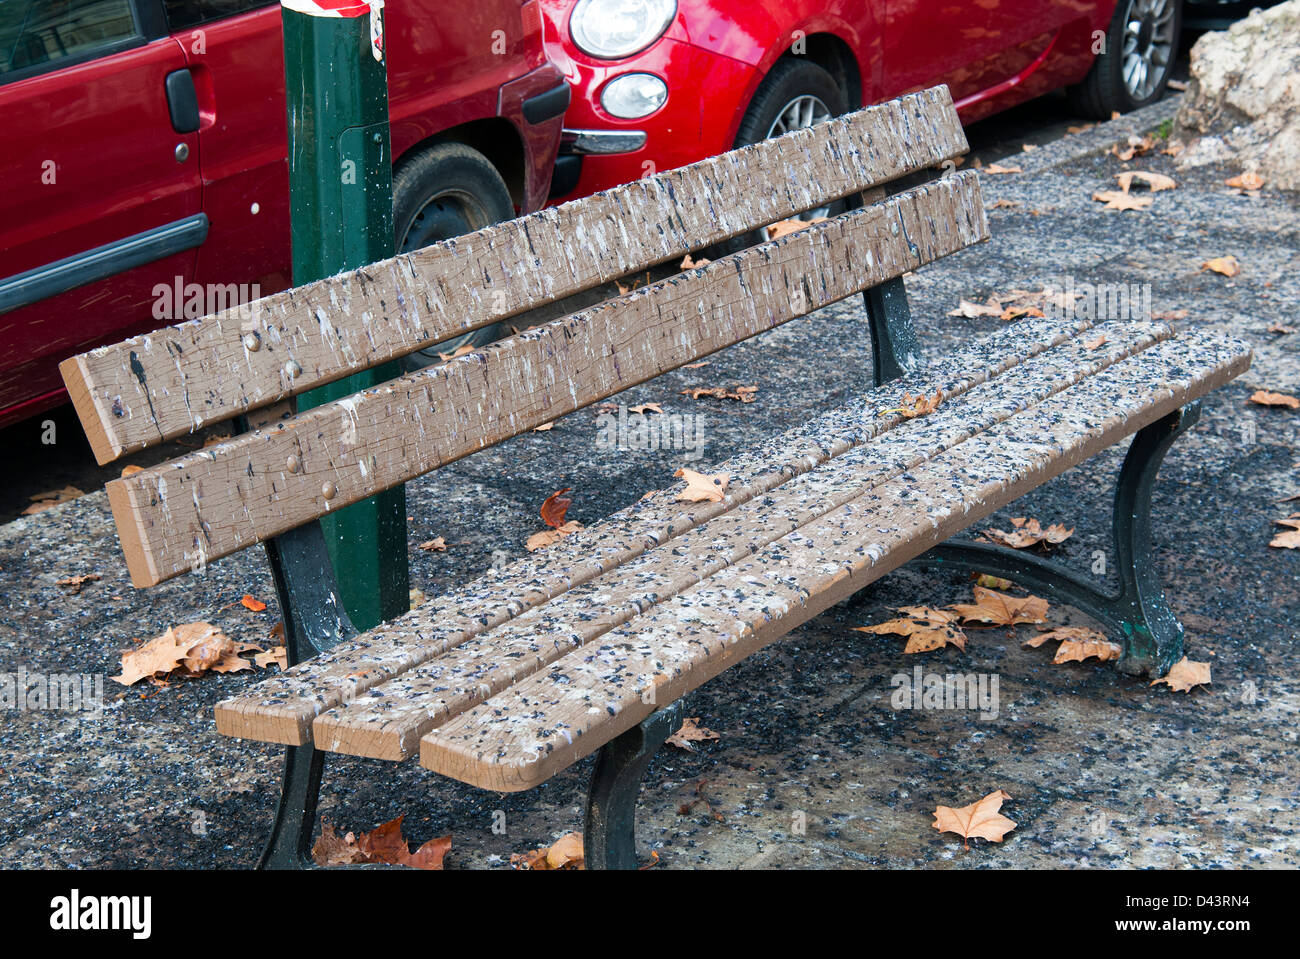 Bench with bird droppings, Ajaccio, Corsica, France, Europe - Stock Image